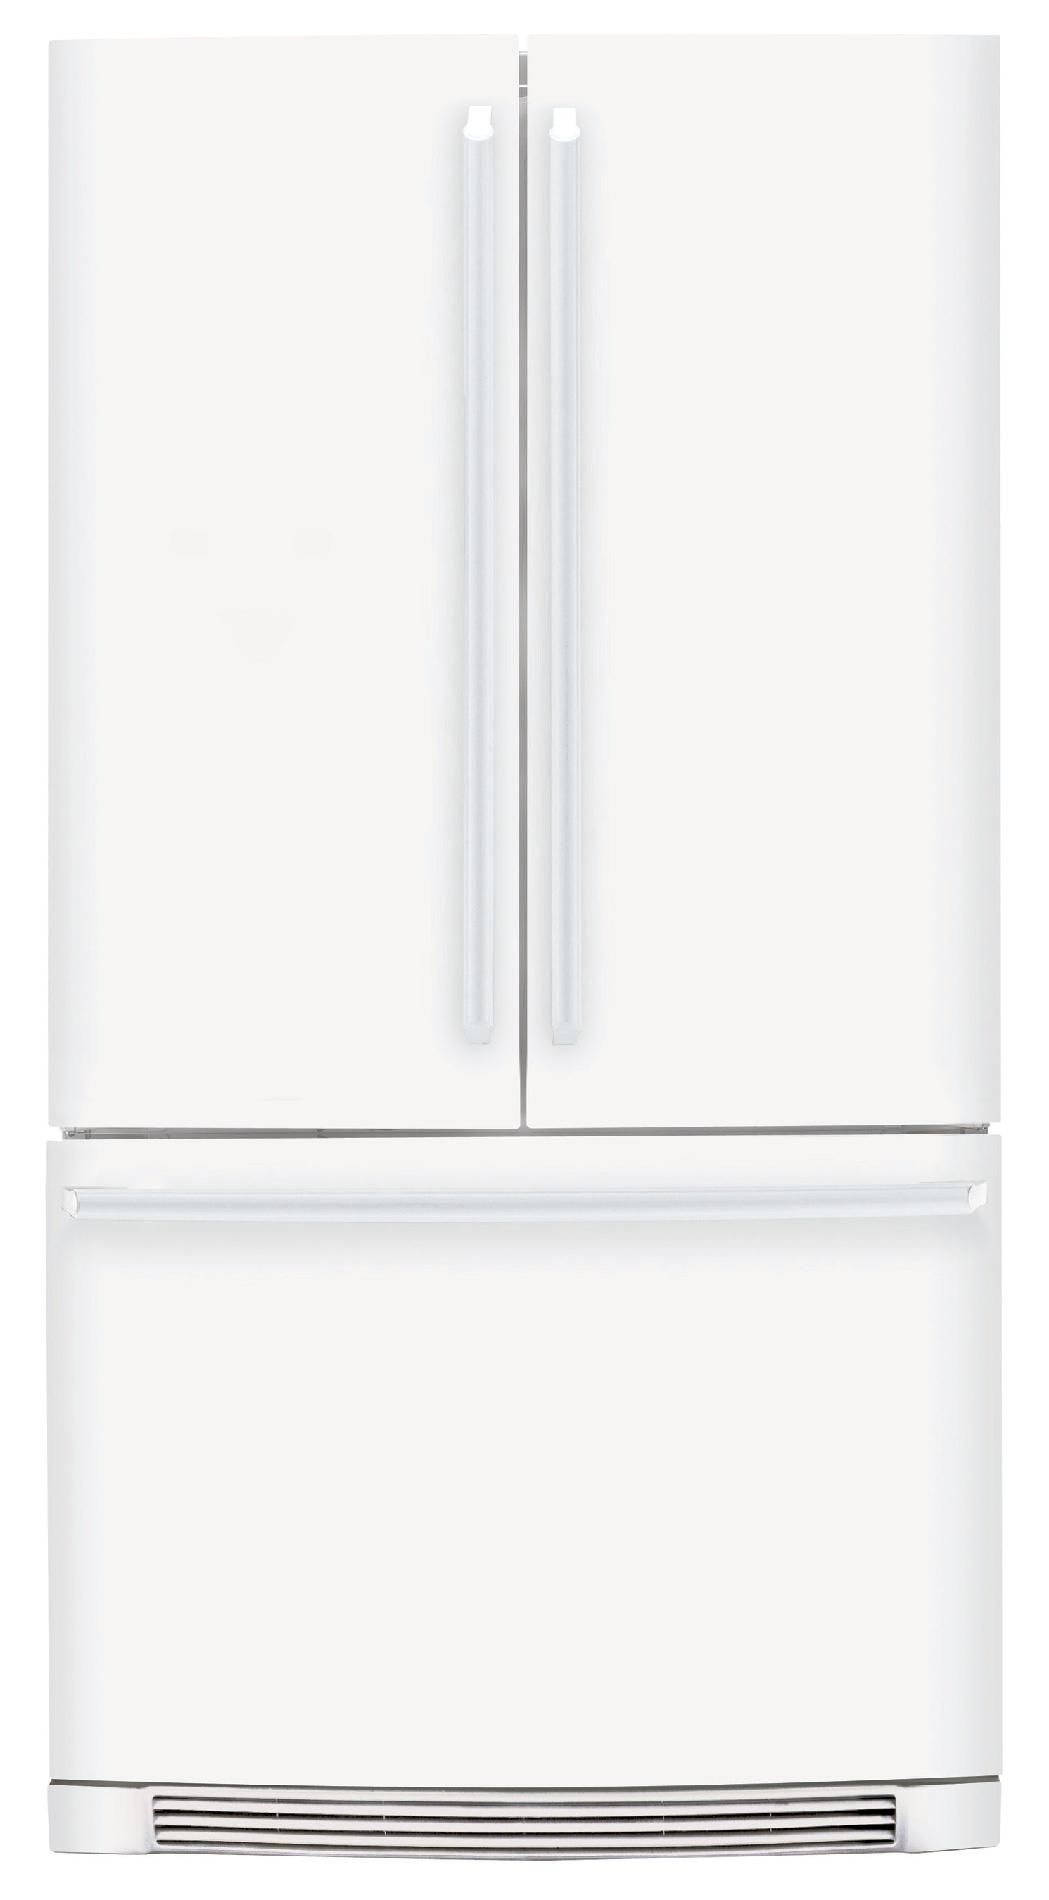 Electrolux Ei23bc30kw 23 Cu Ft Counter Depth French Door